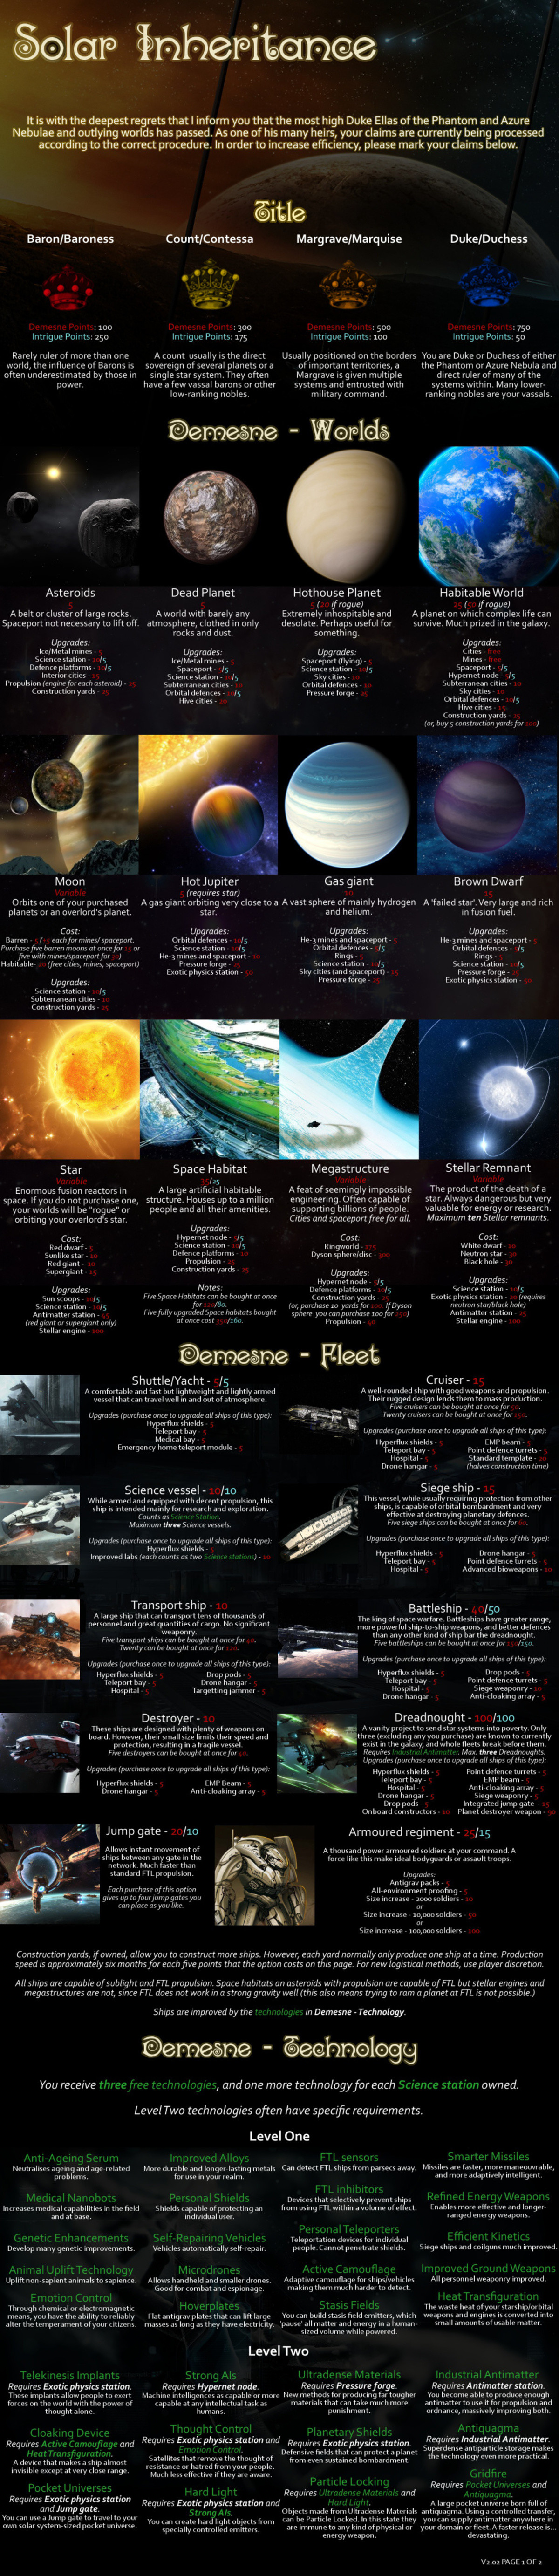 Solar Inheritance CYOA. Haven't seen this one posted in a while, figured I'd put it up for you fine fellows .. In case you want to see my obviously superior build, here ya go! Title - Count: A good middle ground option, plus being a count just sounds the coolest World -